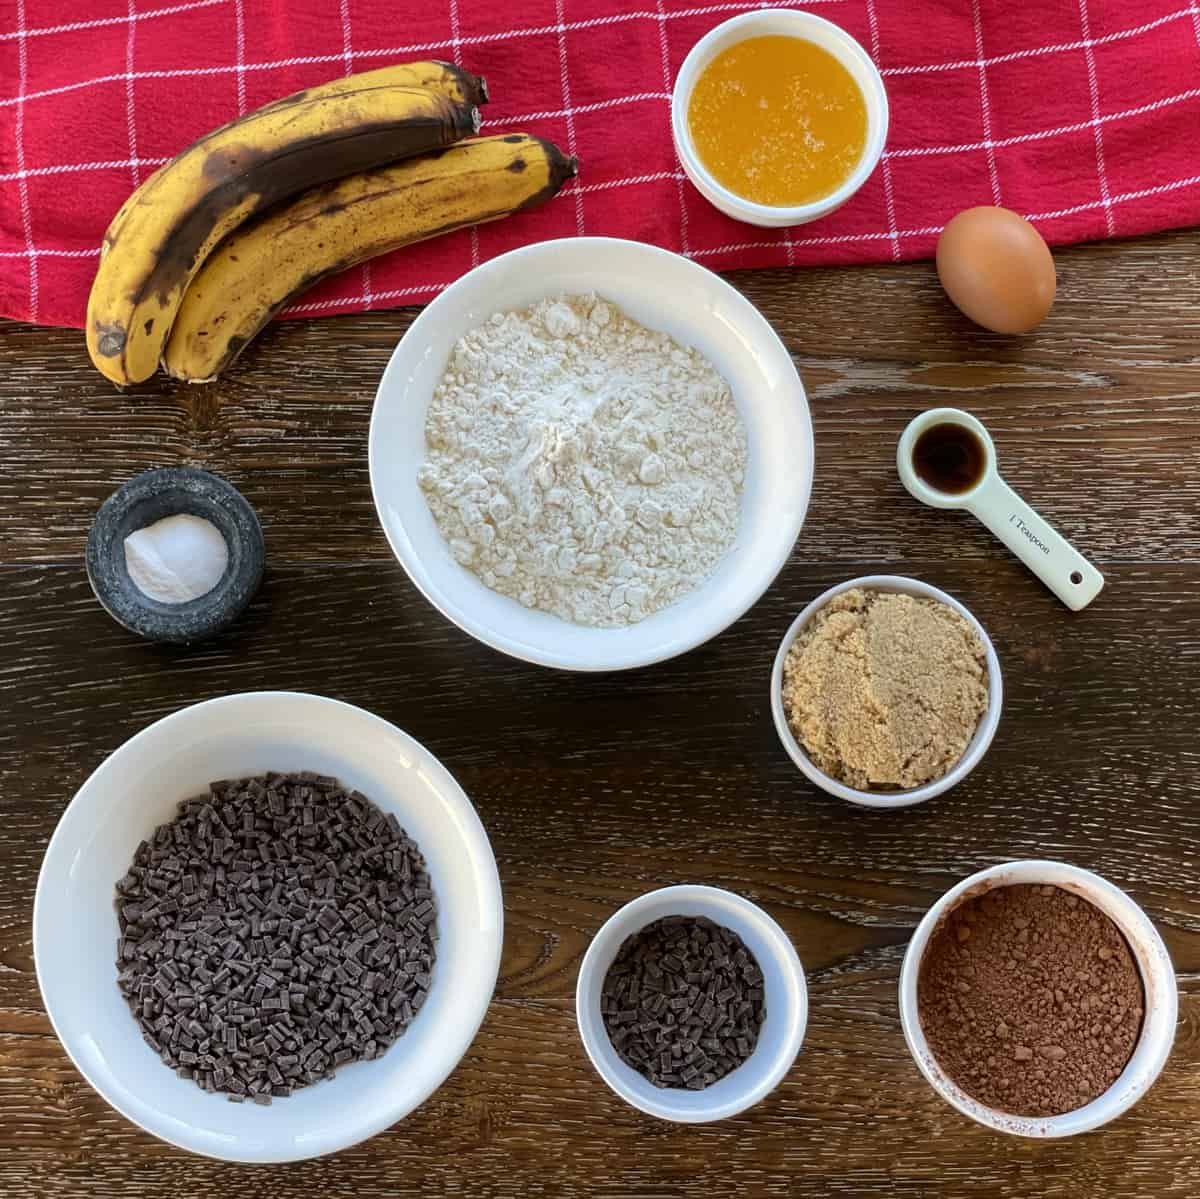 Ingredients for Double Chocolate Banana Loaf, see recipe card for details